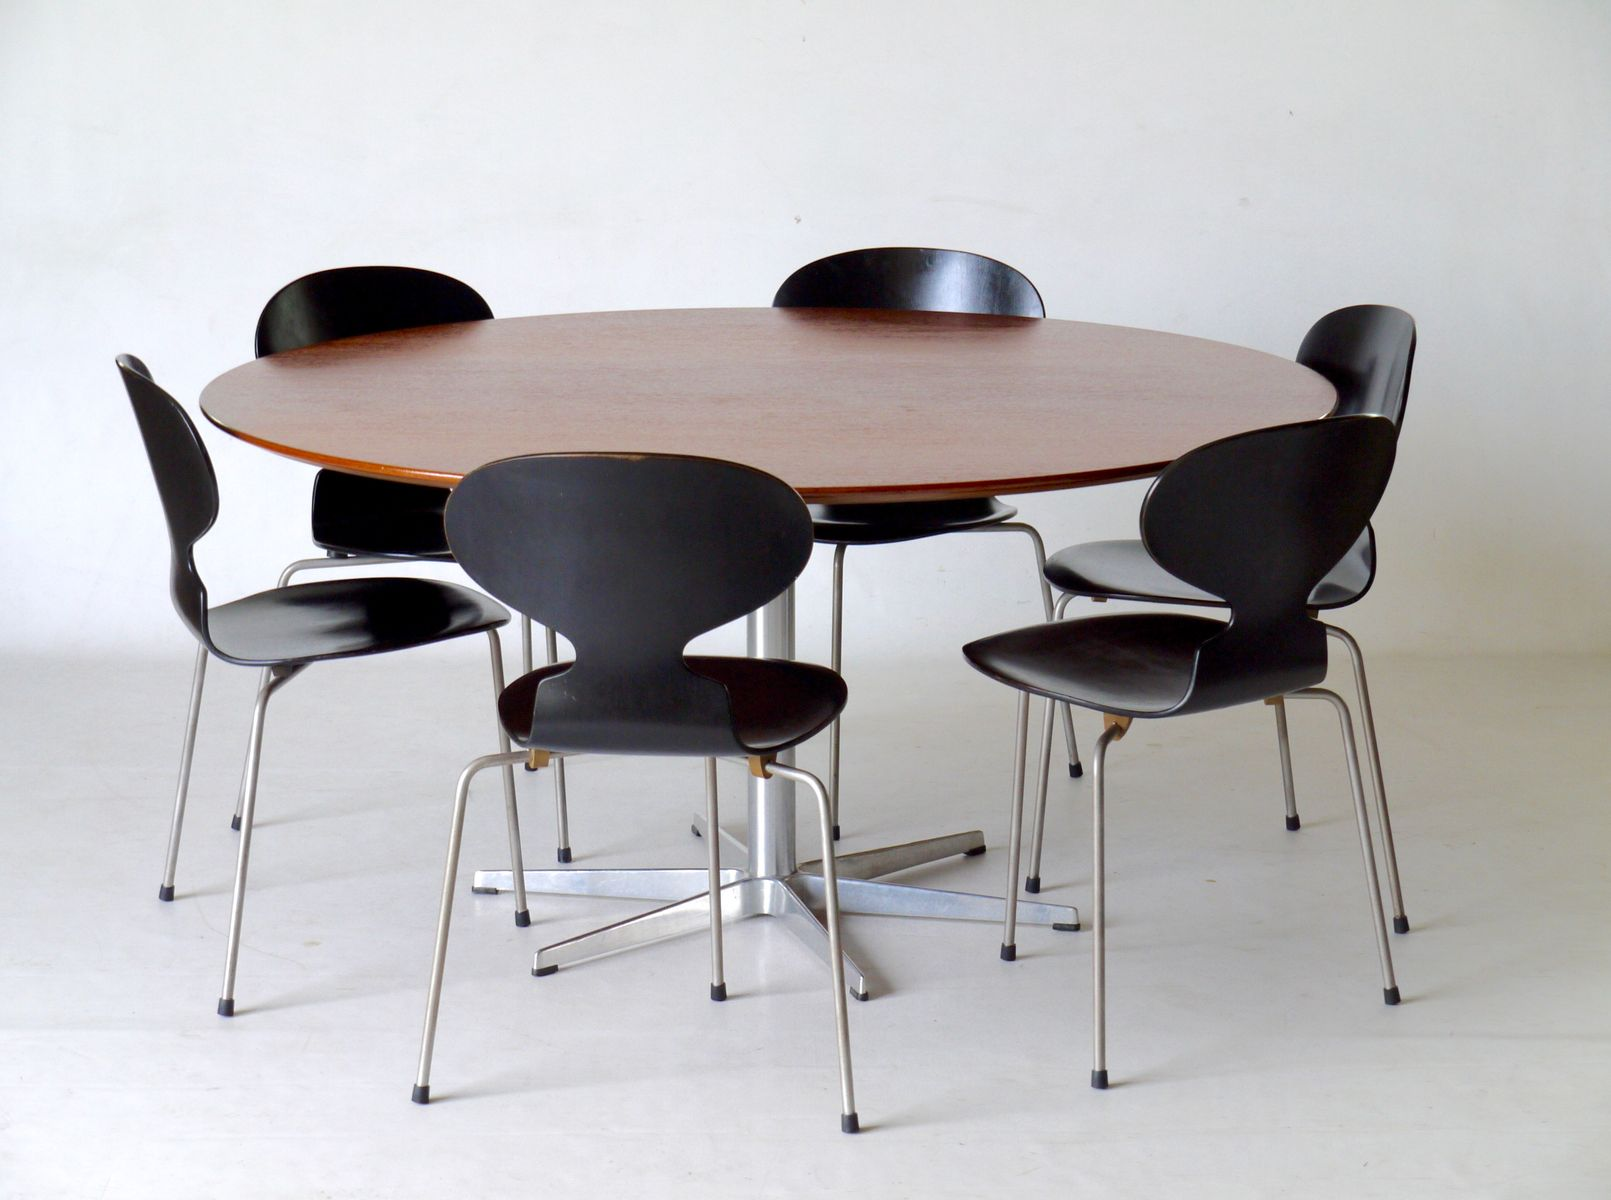 Vintage Danish 6 Star Table with 6 Ant Chairs by Arne Jacobsen for